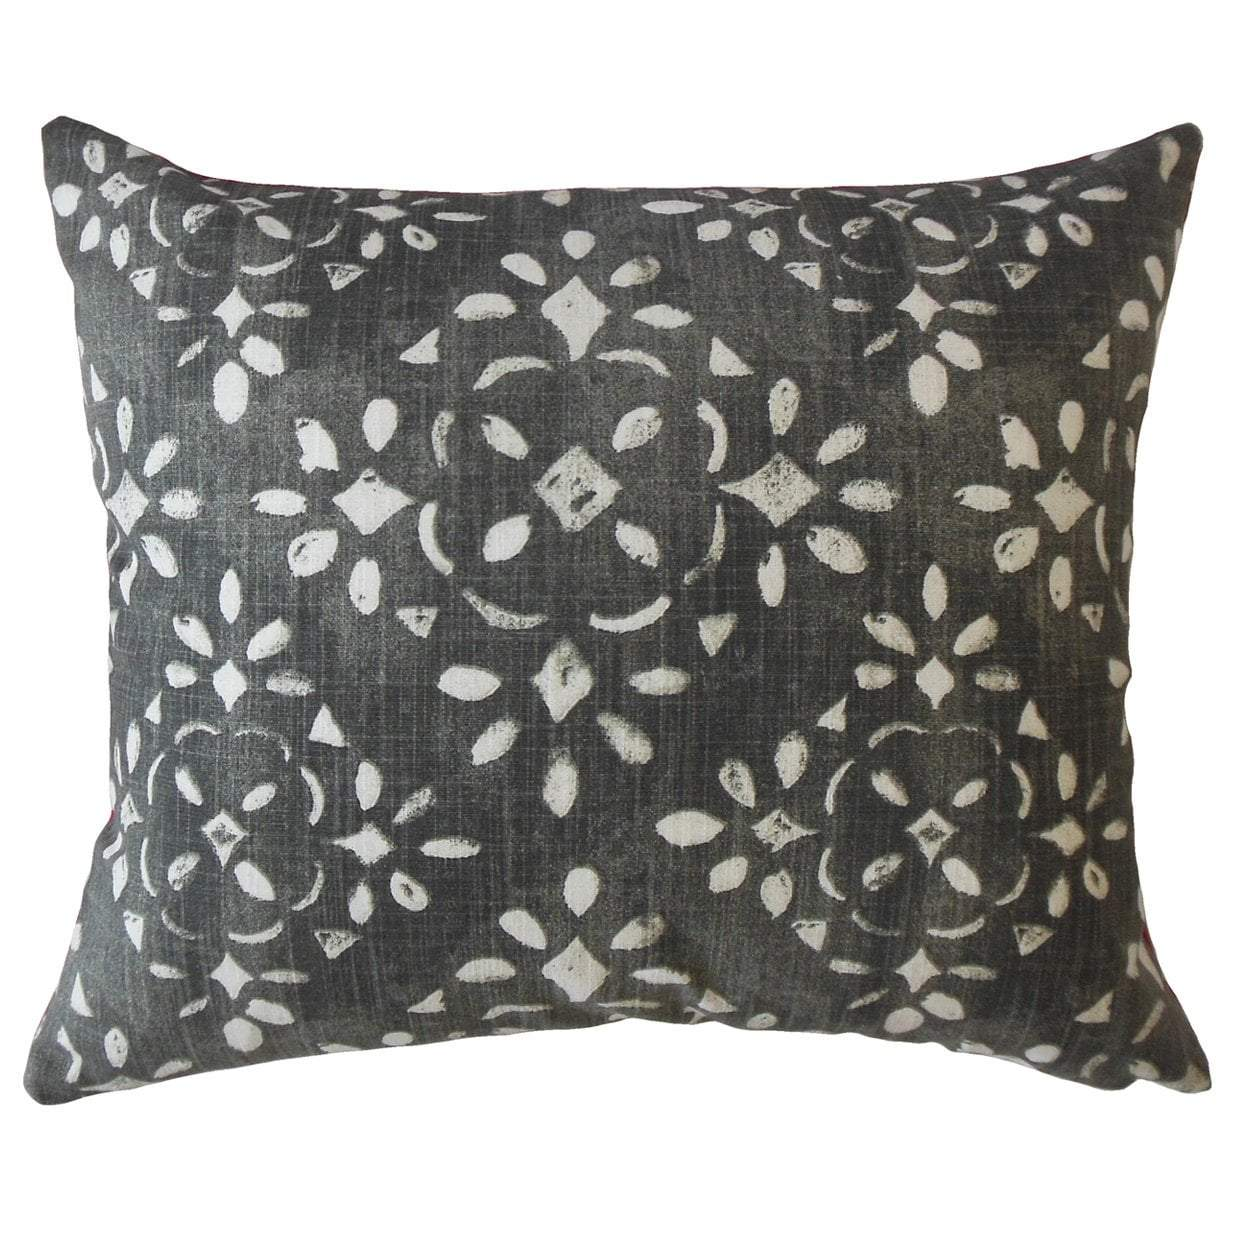 Black Cotton Ikat Boho Throw Pillow Cover